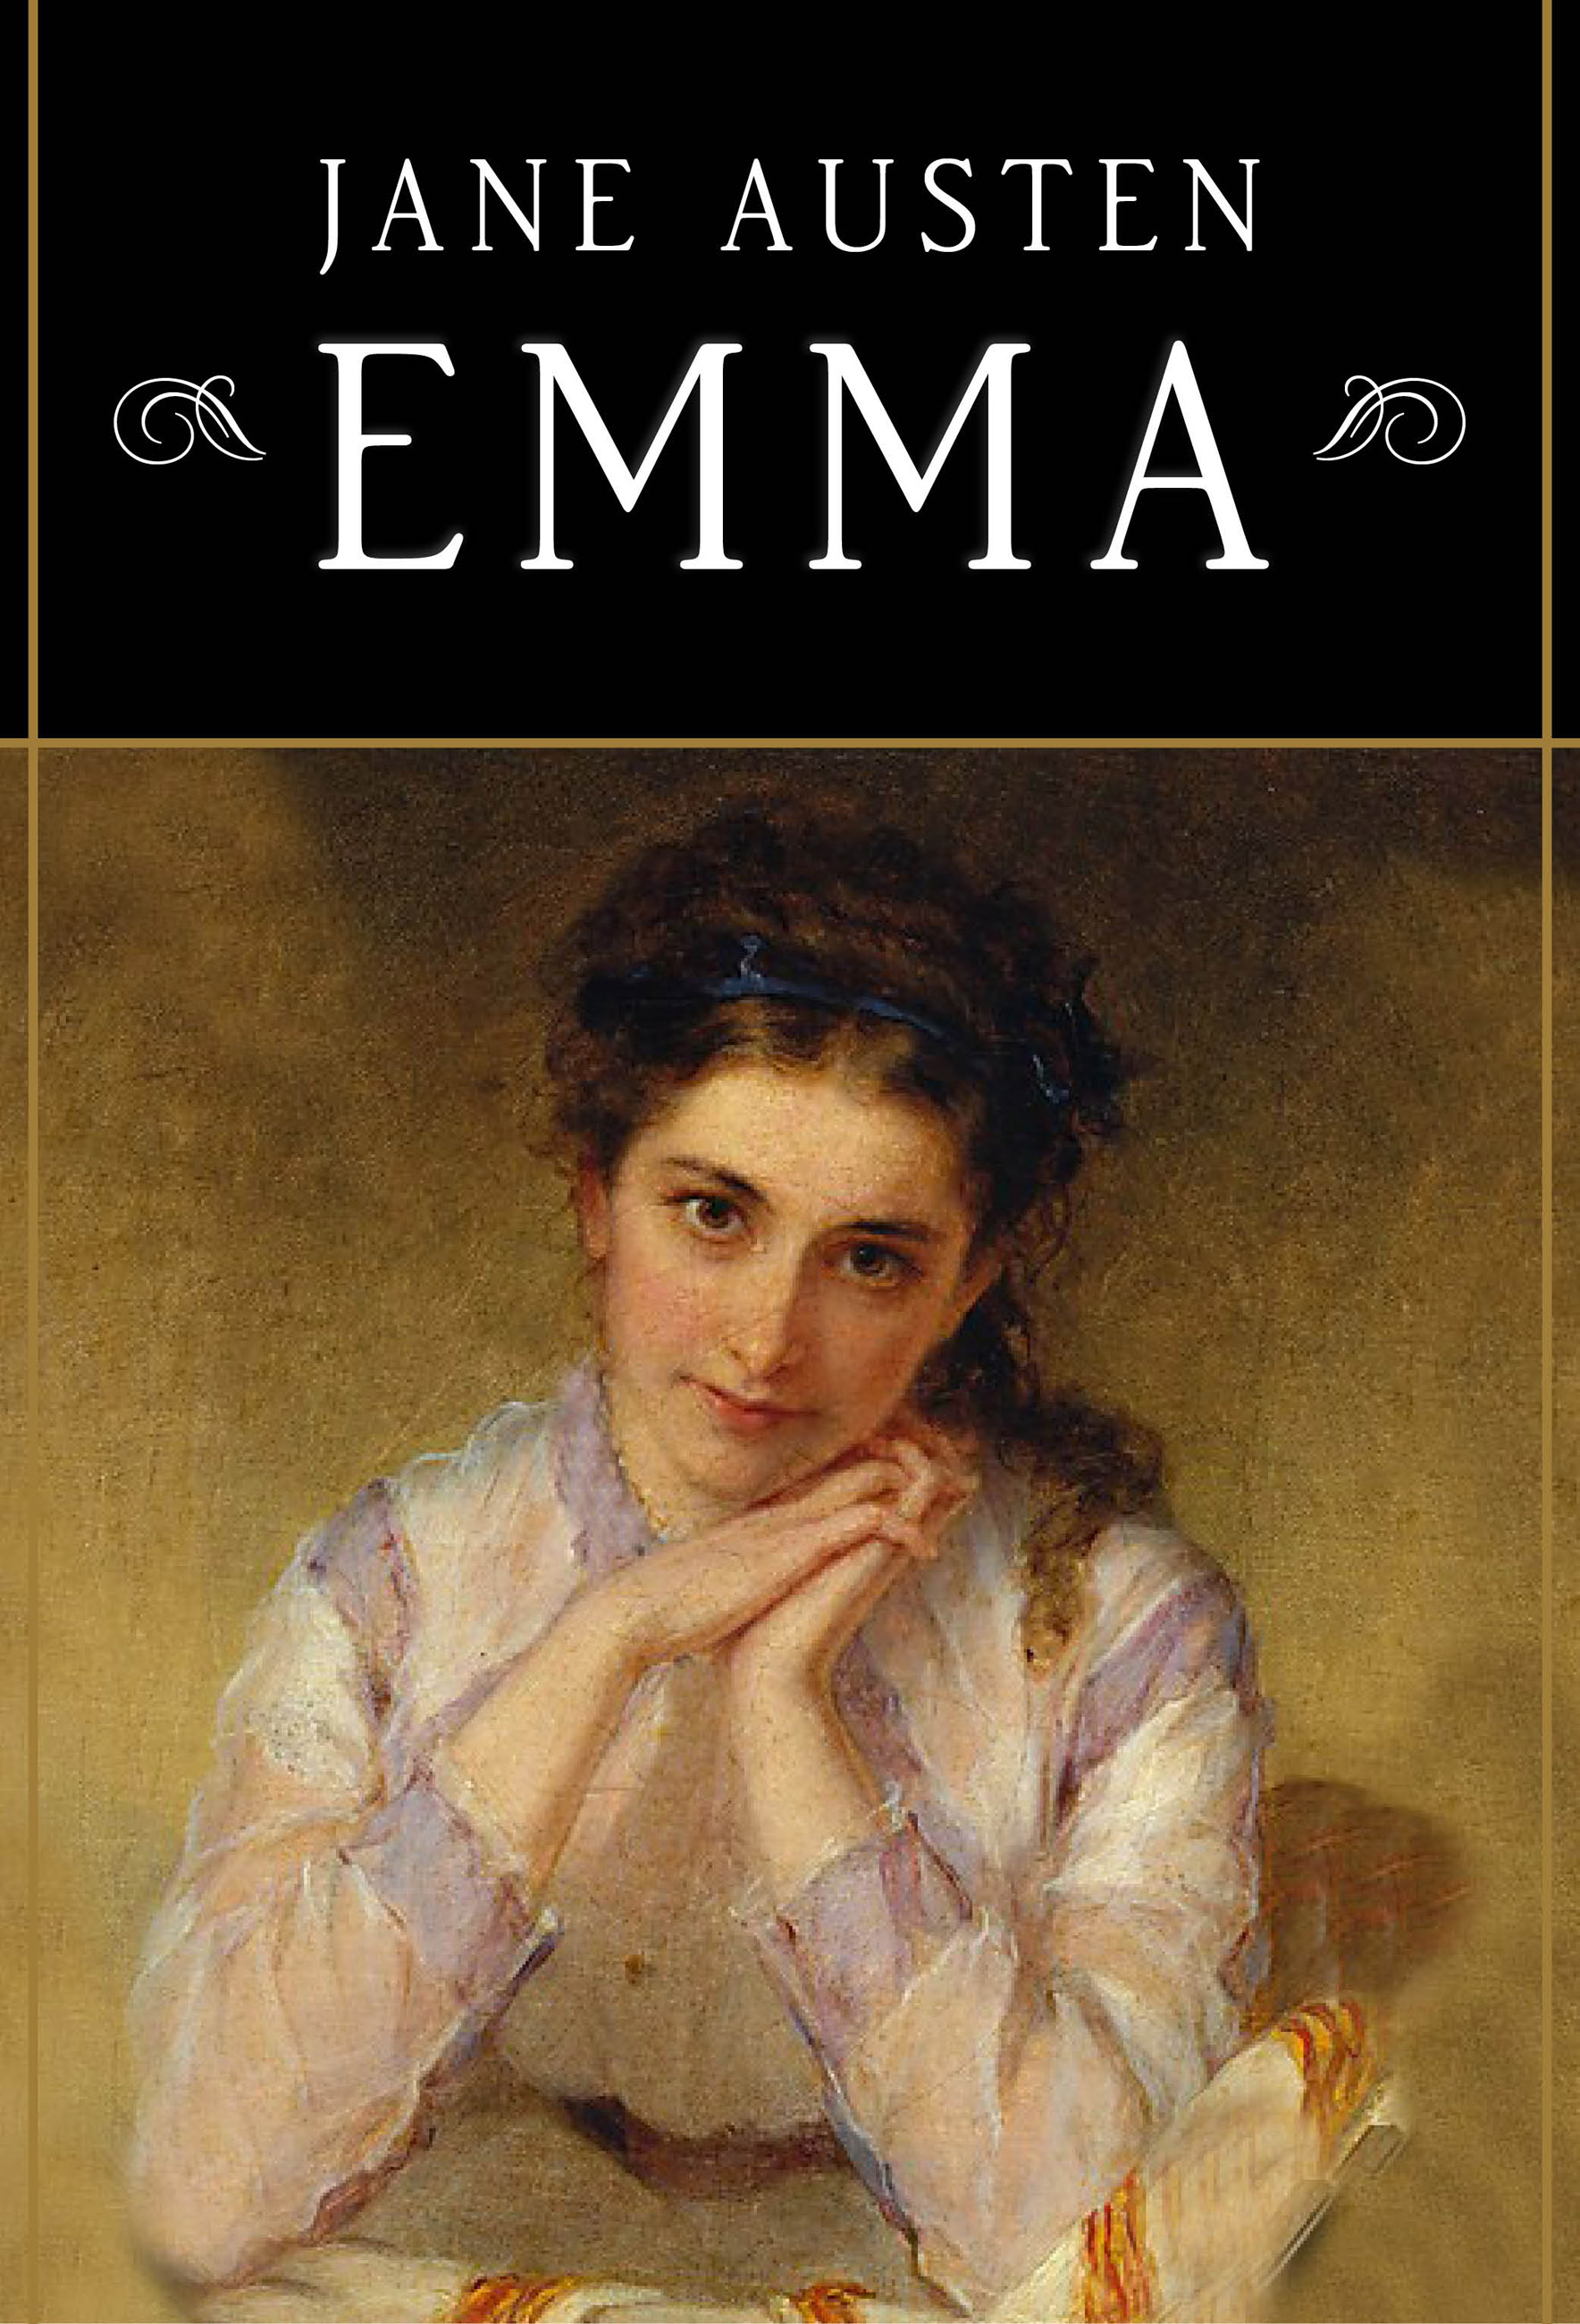 the effects of social status on marriage and other aspects of life in emma a novel by jane austen